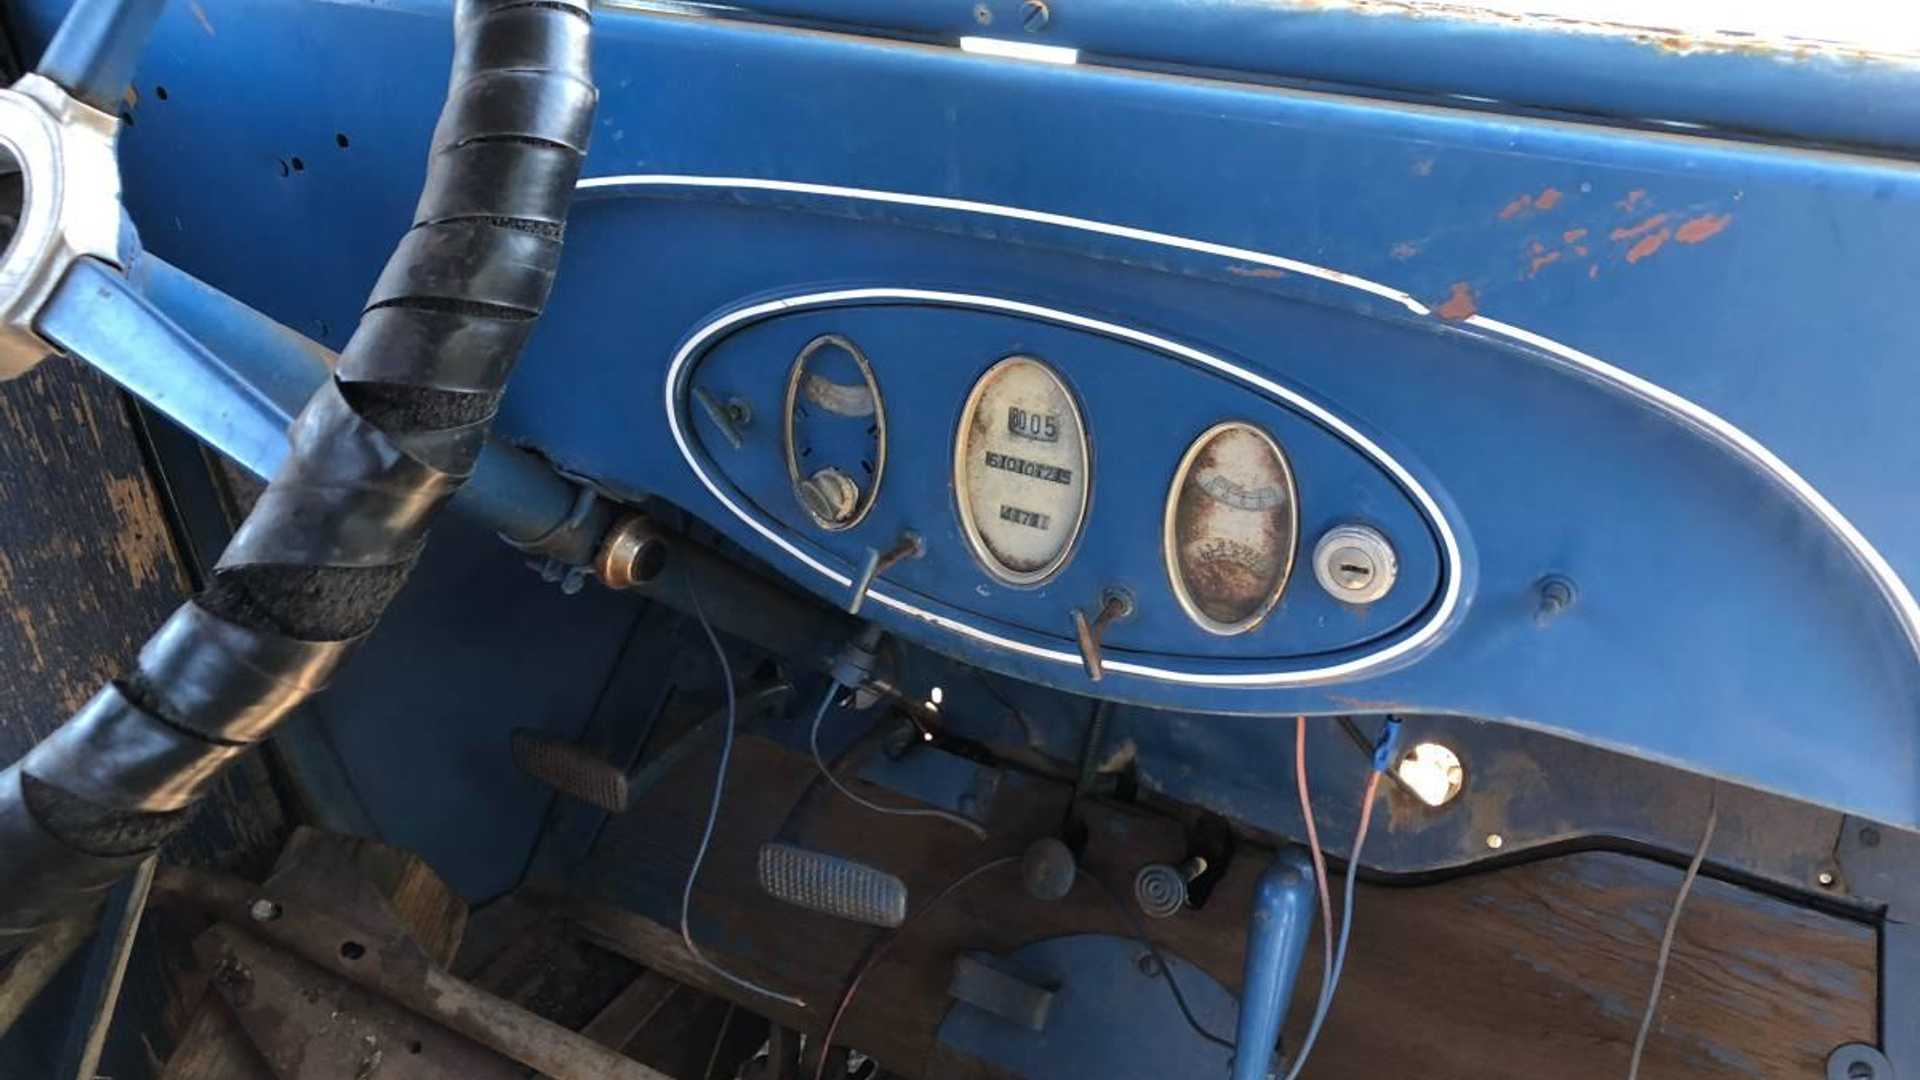 hight resolution of  craigslist find 1931 chevy 1 5 ton truck with original parts